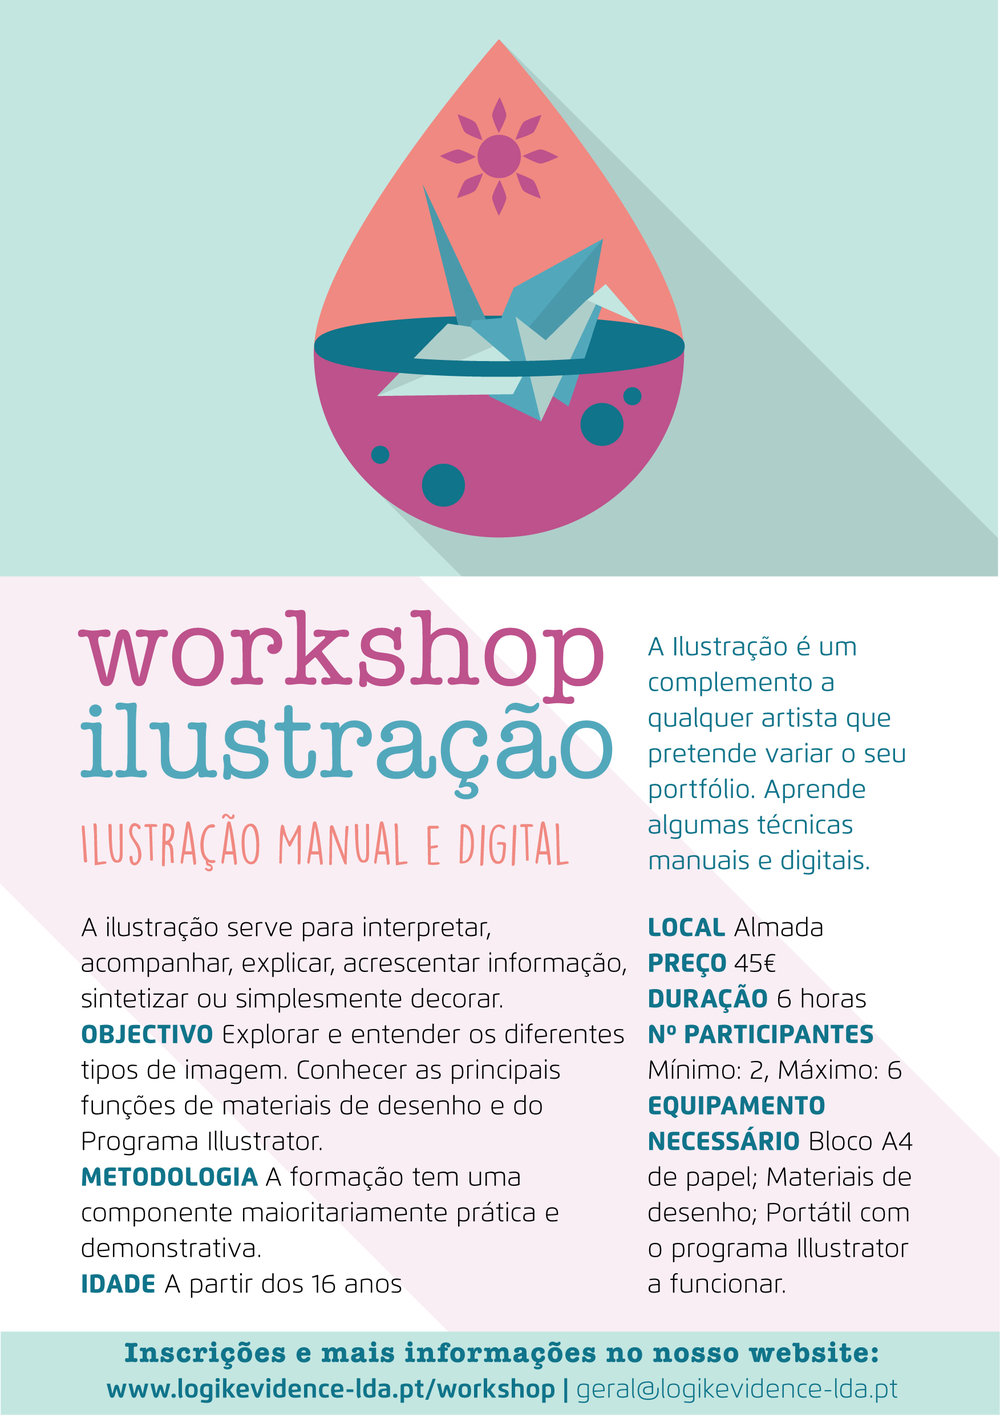 flyer workshop ilustracao.jpg